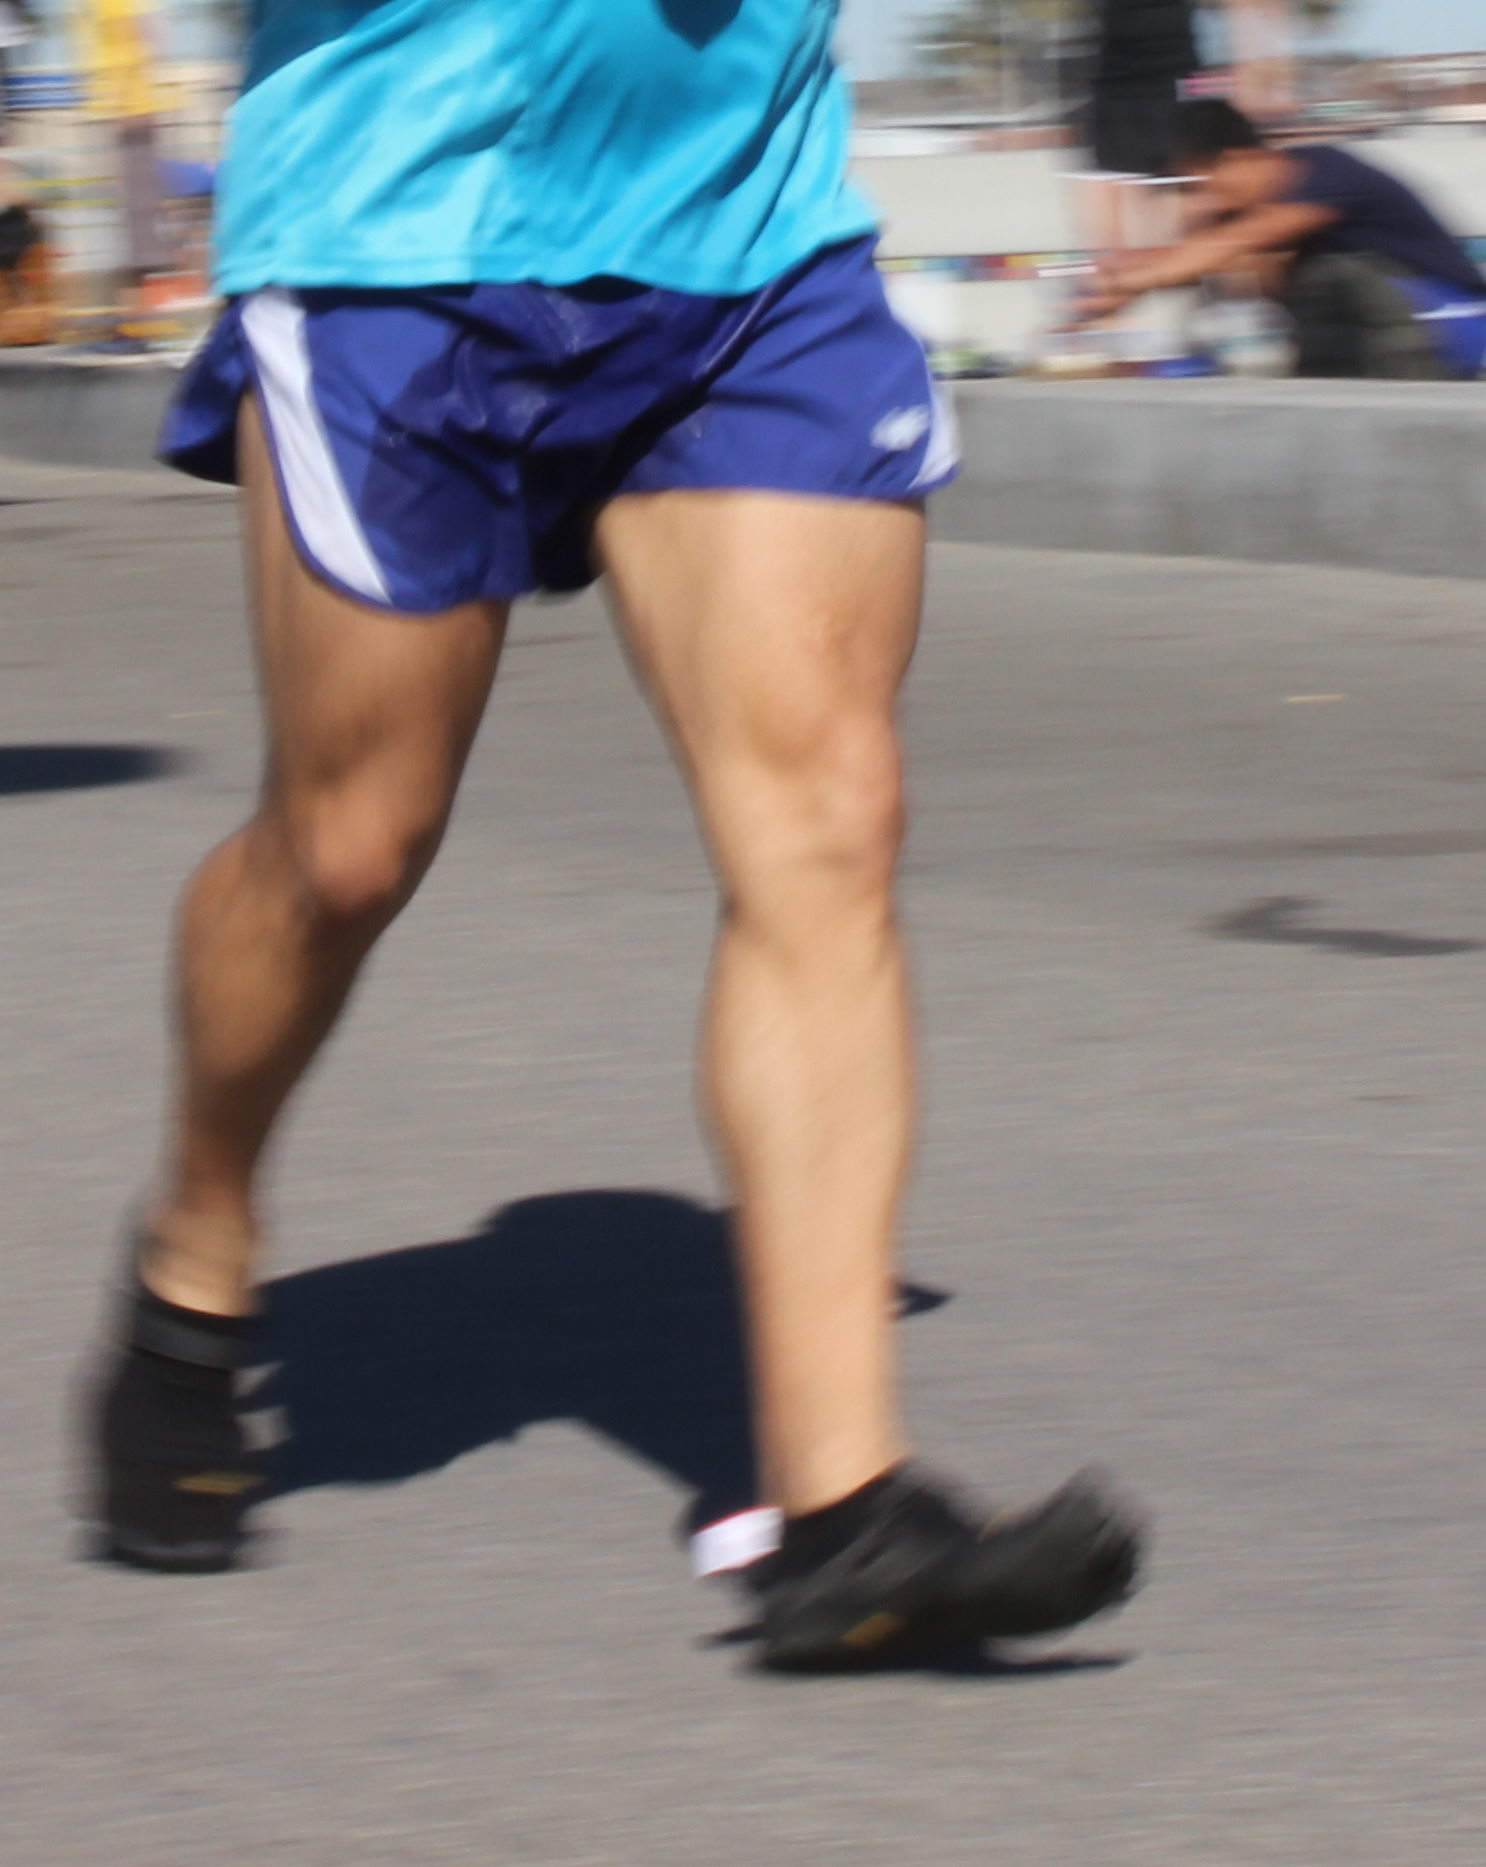 looks like a heel-strike --- in Vibrams (2012 February 5) Surf City Marathon